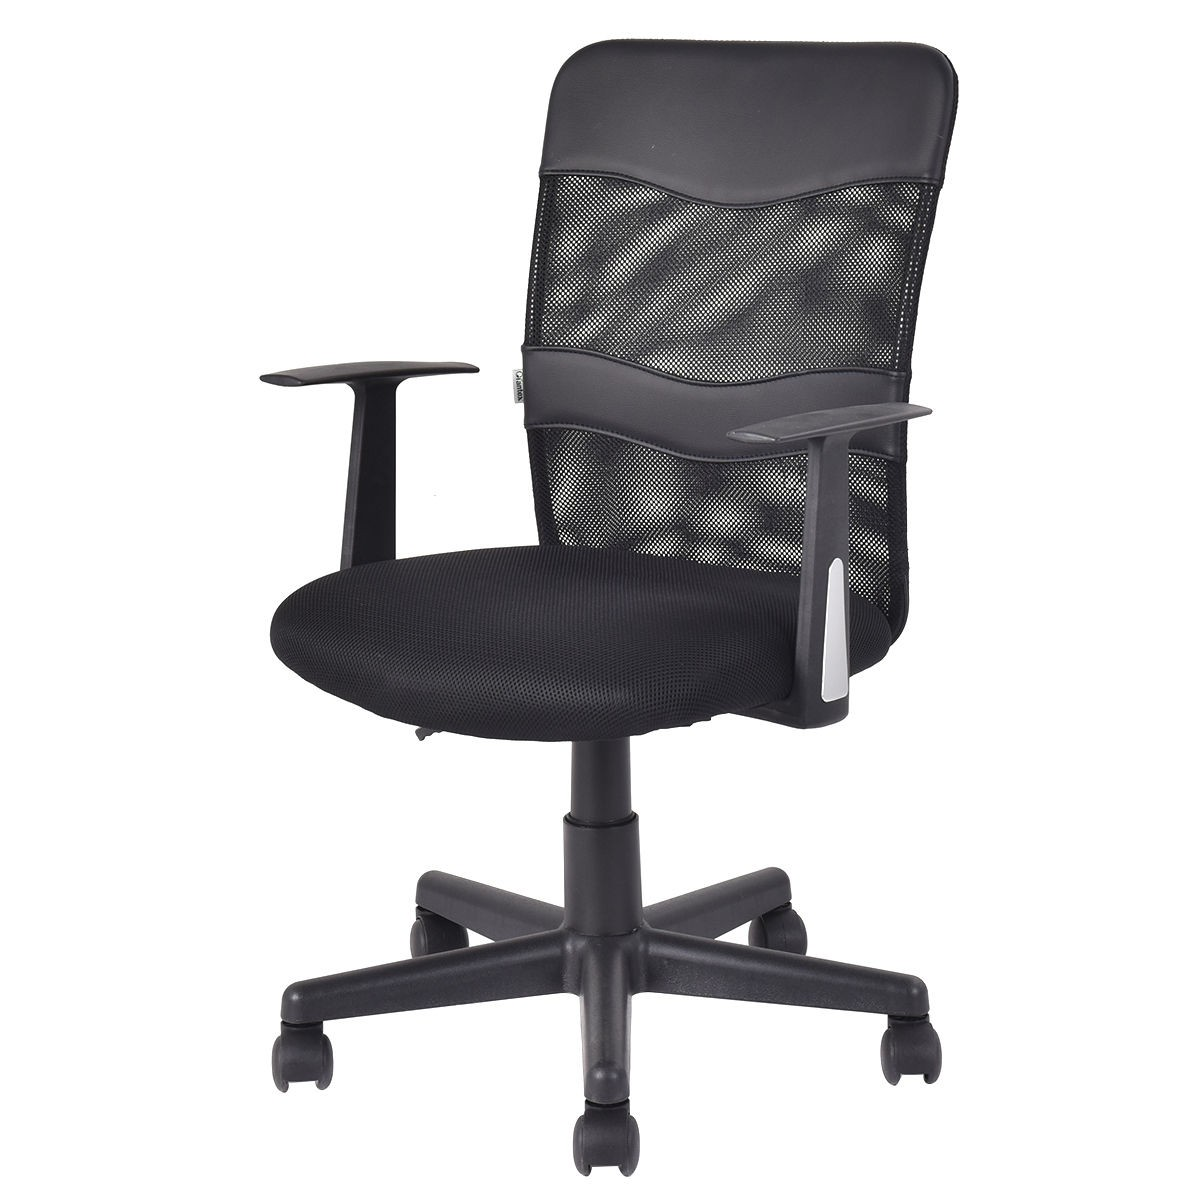 Mesh Ergonomic Office Chair Modern Ergonomic Mesh Executive Mid Back Computer Desk